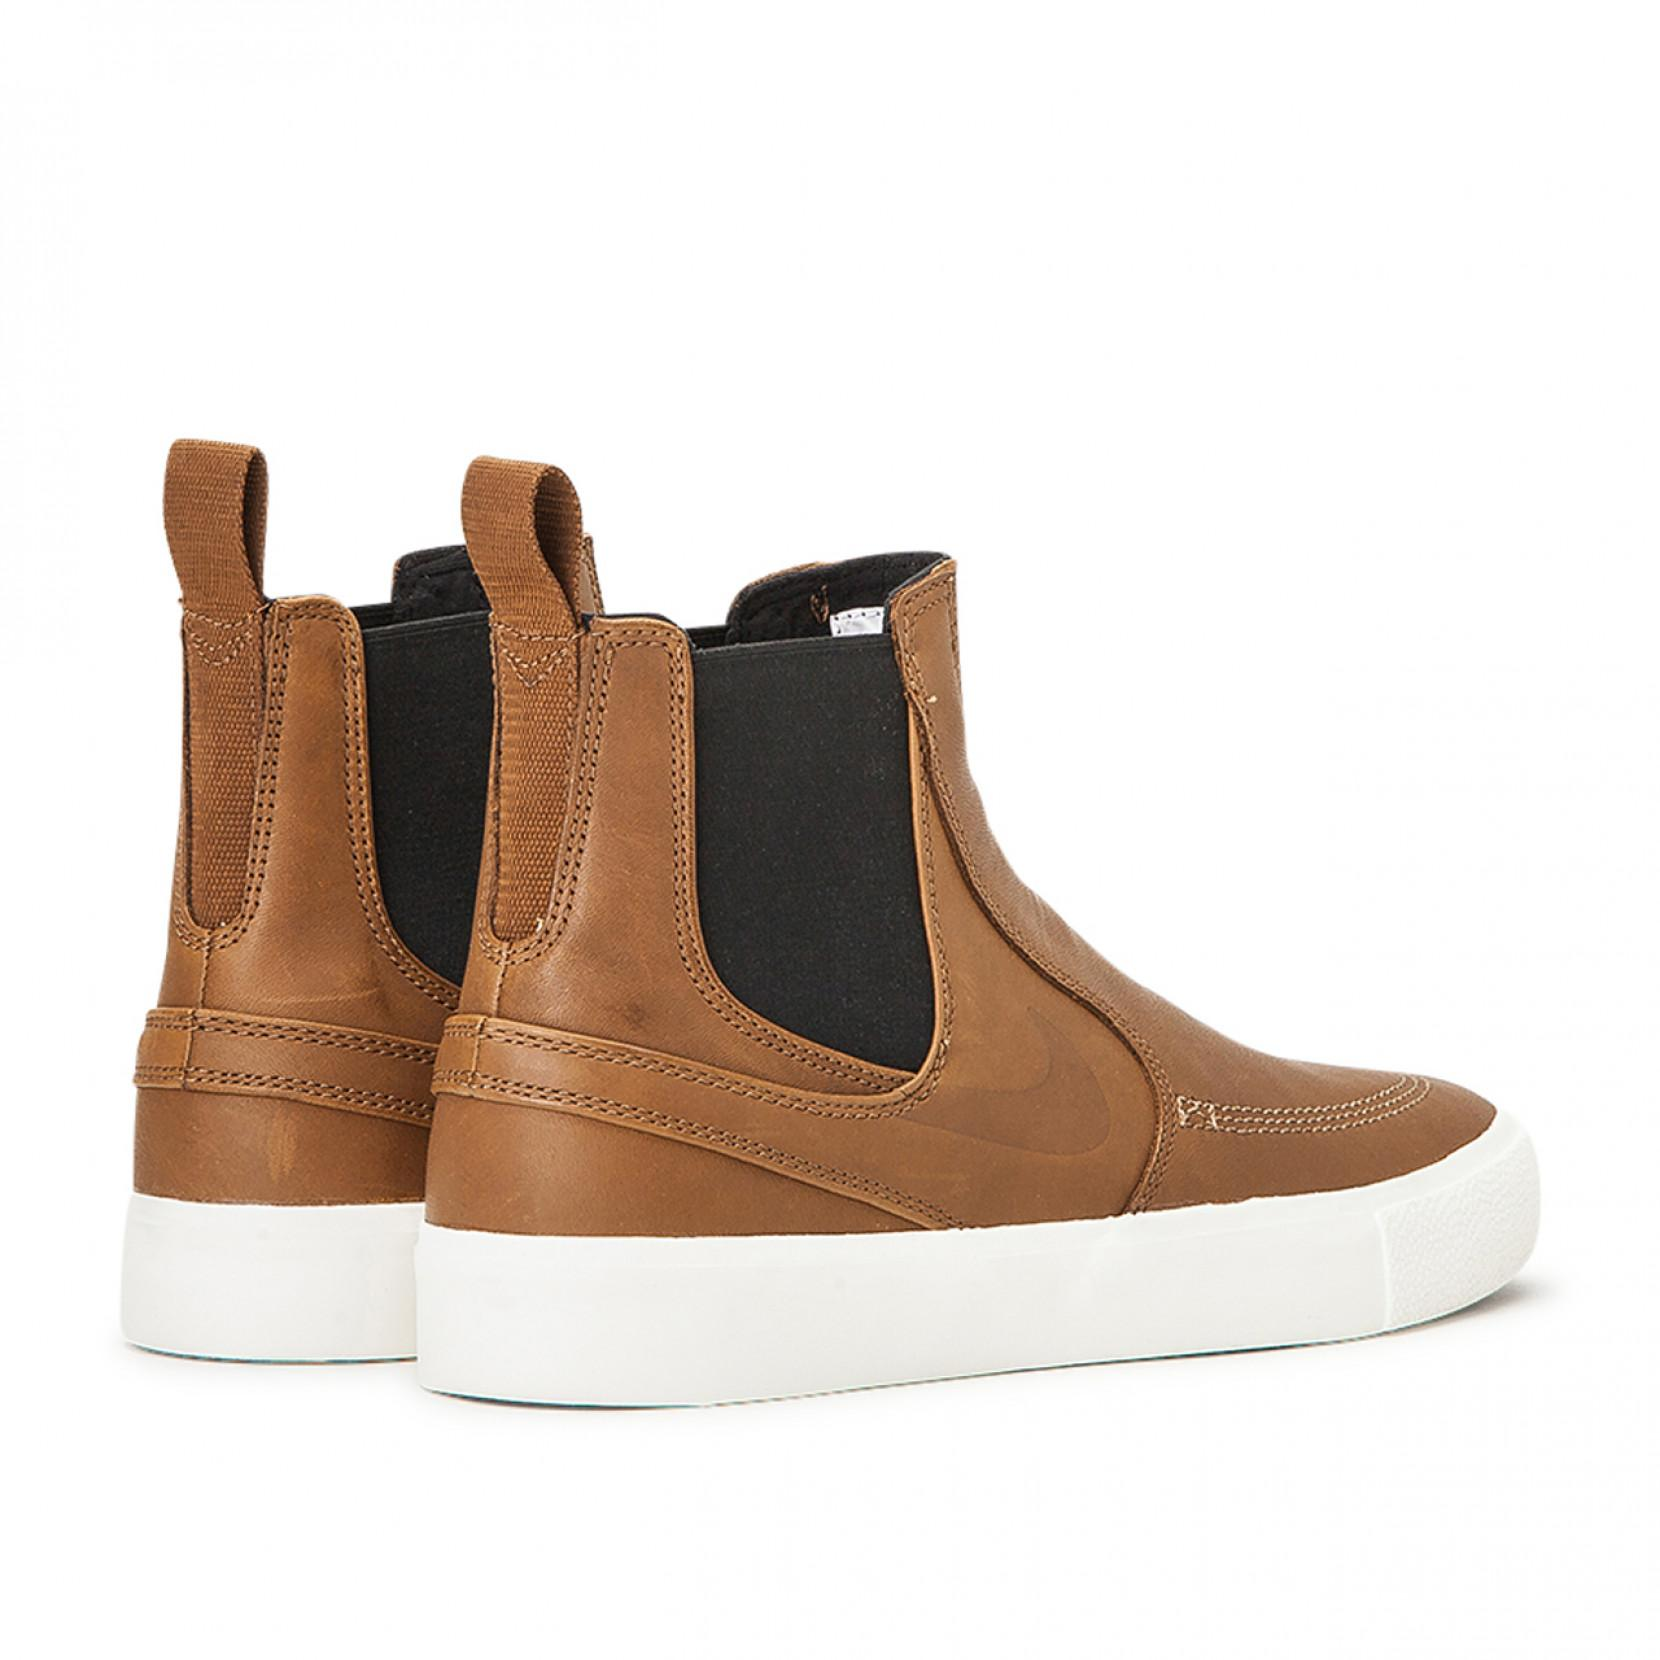 Nike Leather Zoom Stefan Janoski Slip Mid Rm In Brown For Men Lyst